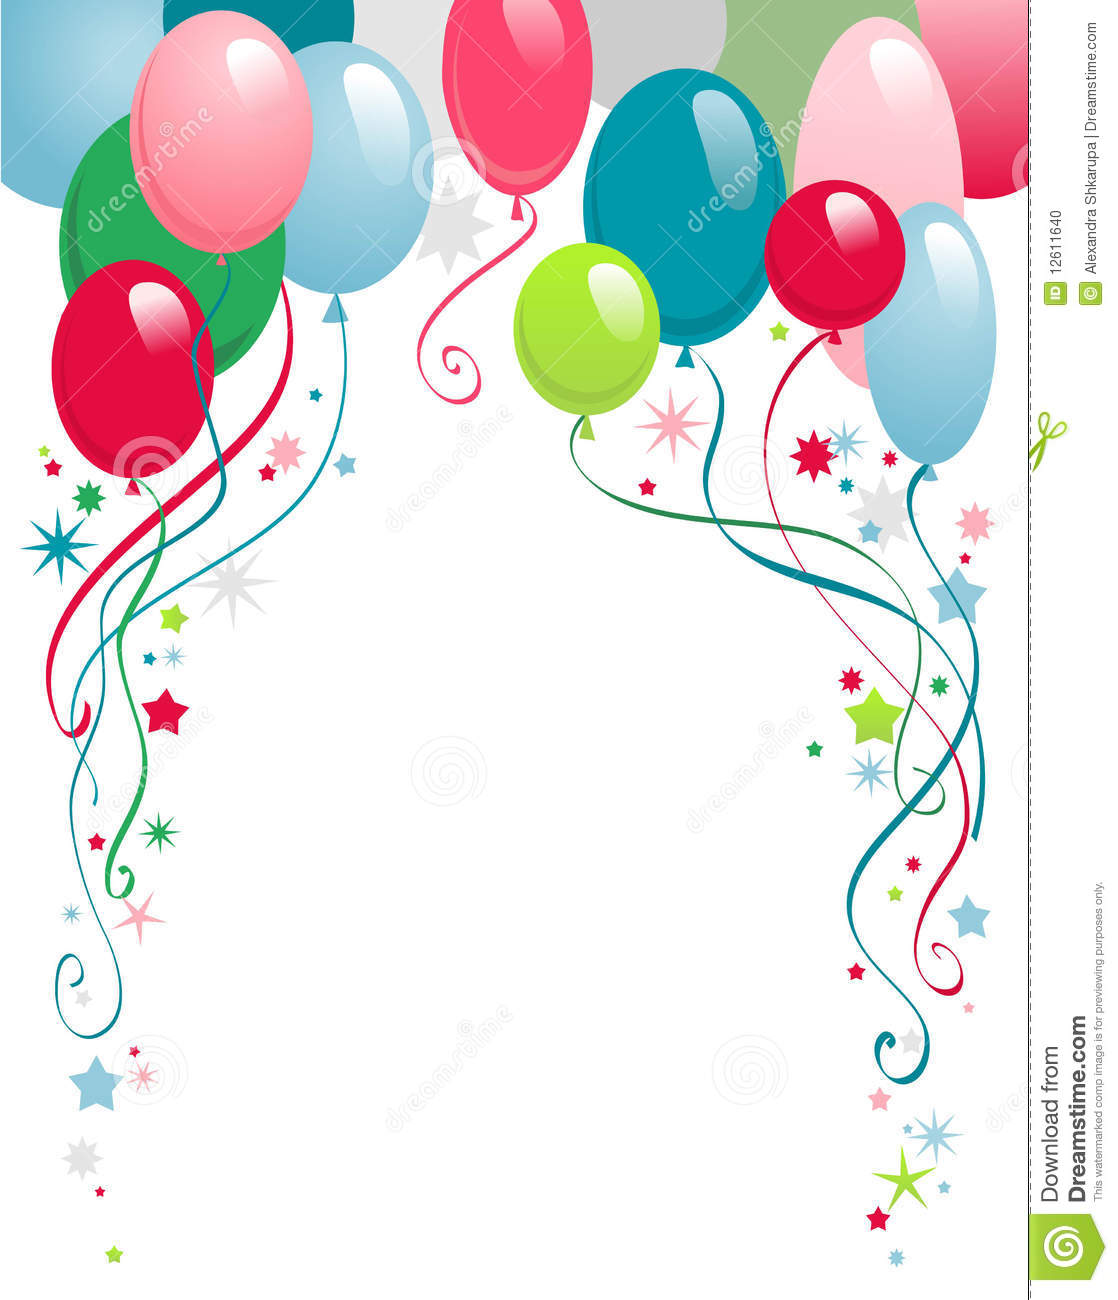 More similar stock images of ` Happy birthday balloons `